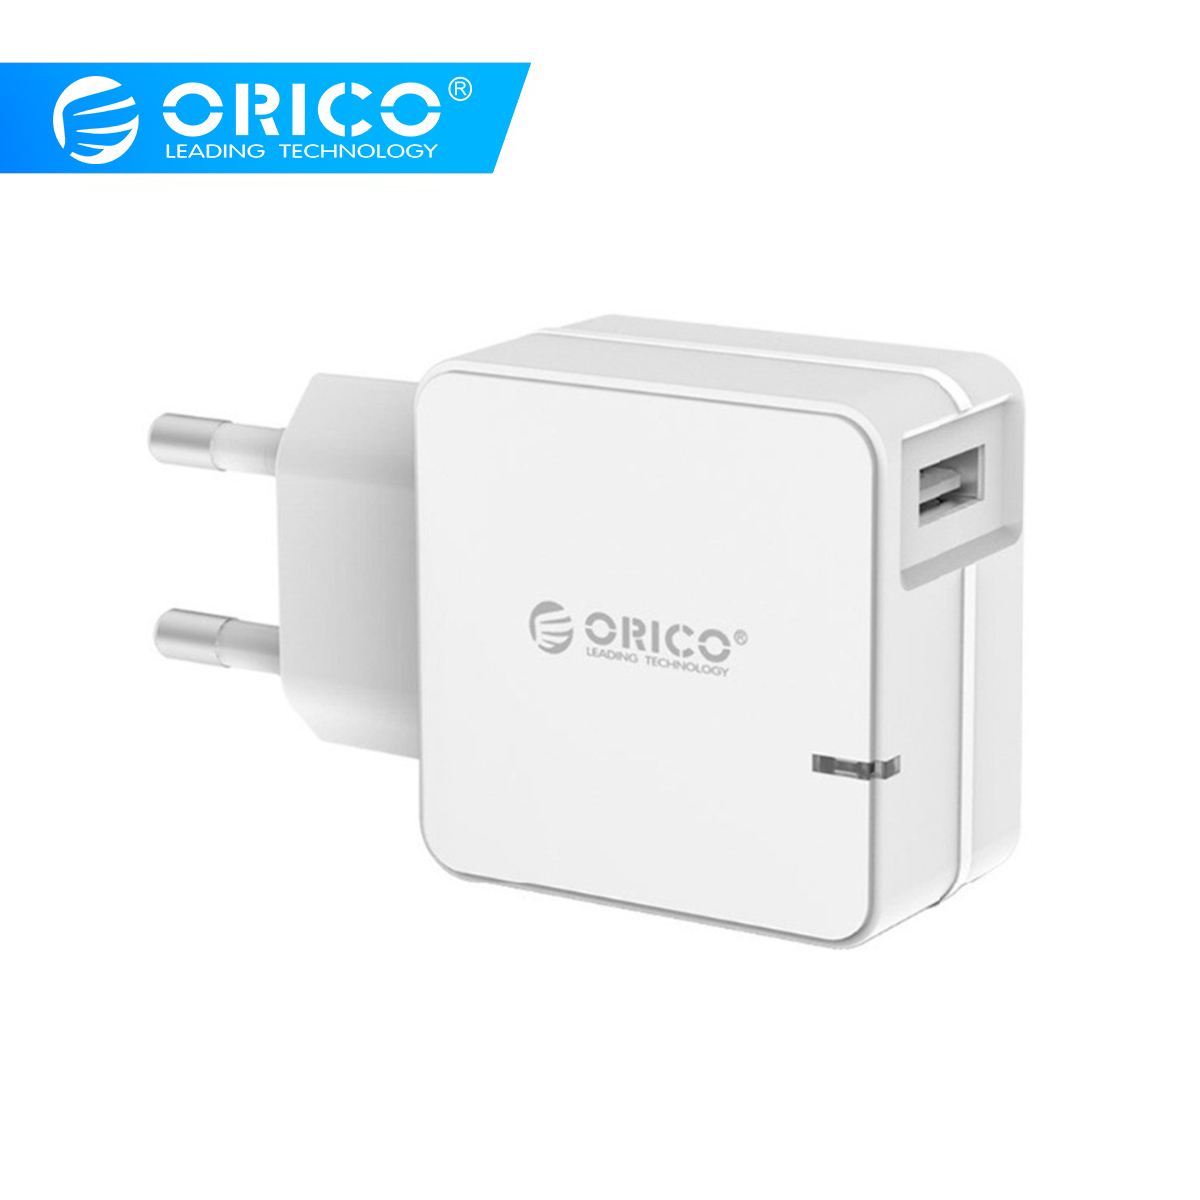 ORICO QCW-1U 1 Port QC2.0 5V2.4A 9V2A 12V1.5A Desktop USB Quick Charger Qualcomm Certified US Plug with Free Micro USB Cable electronics